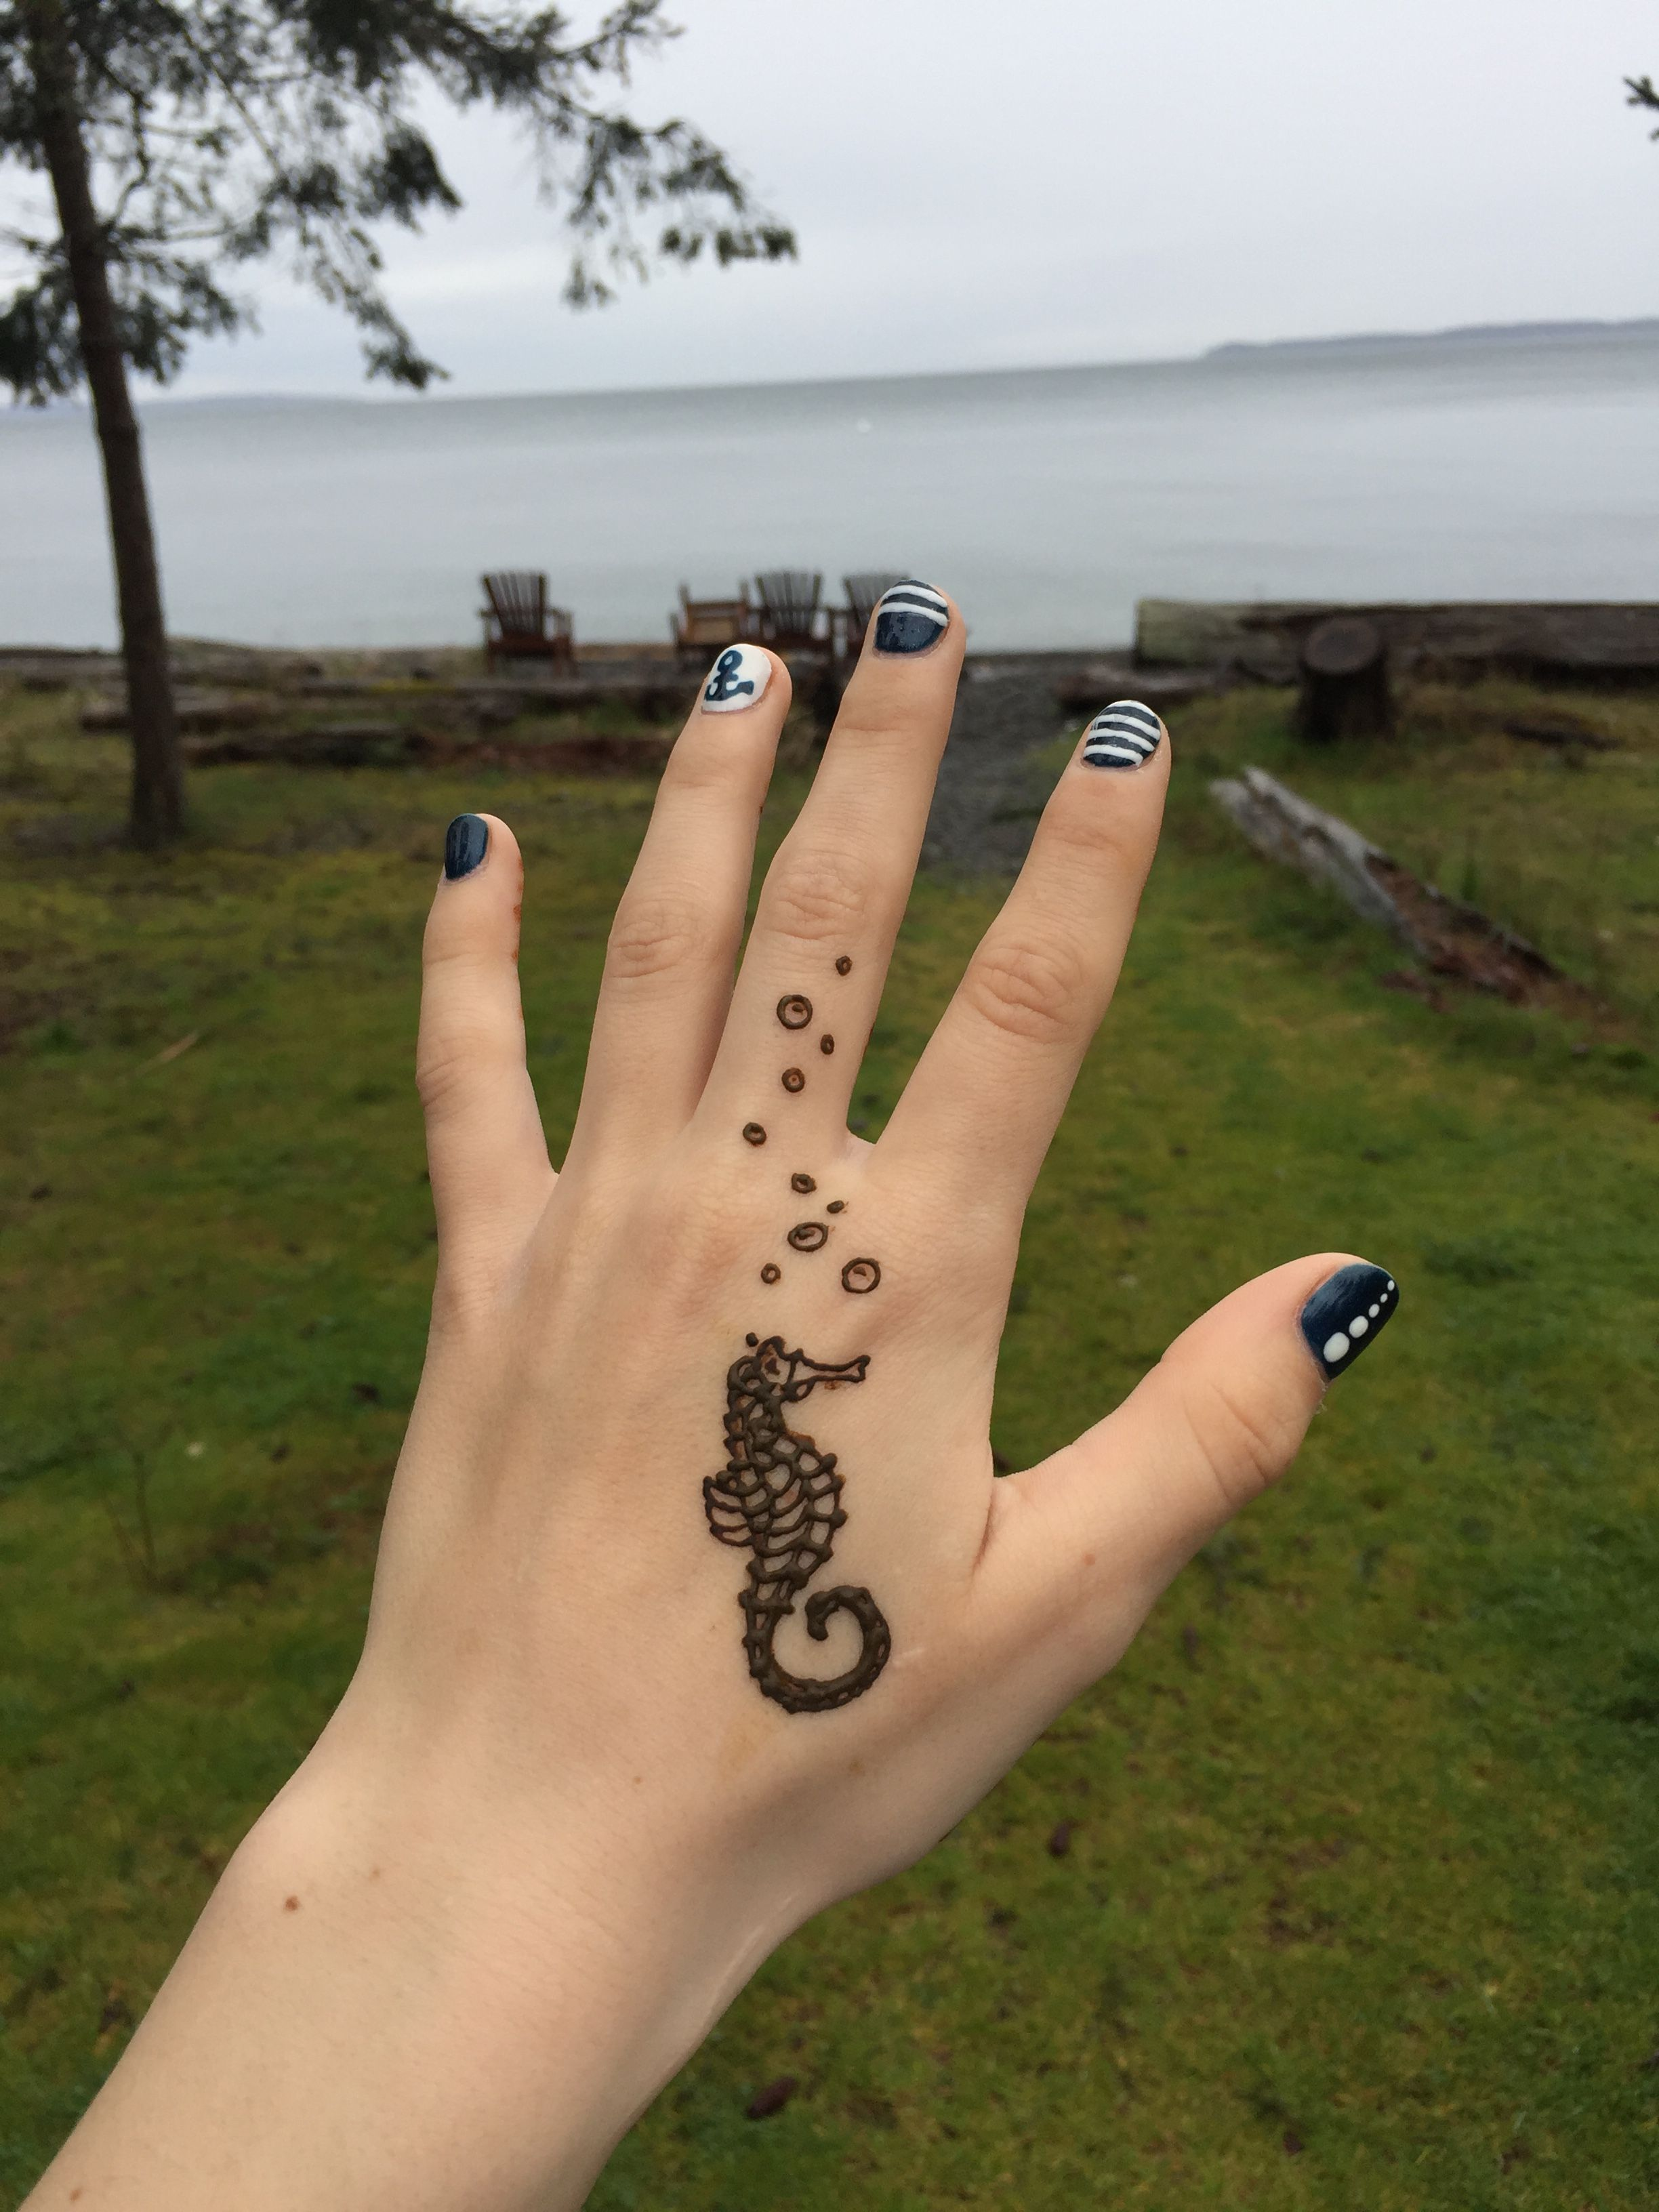 Small Henna Wrist Tattoos Sea Turtle And Lotus Infinity: Insta>>>sher.henna Seahorse Henna! Pinterest